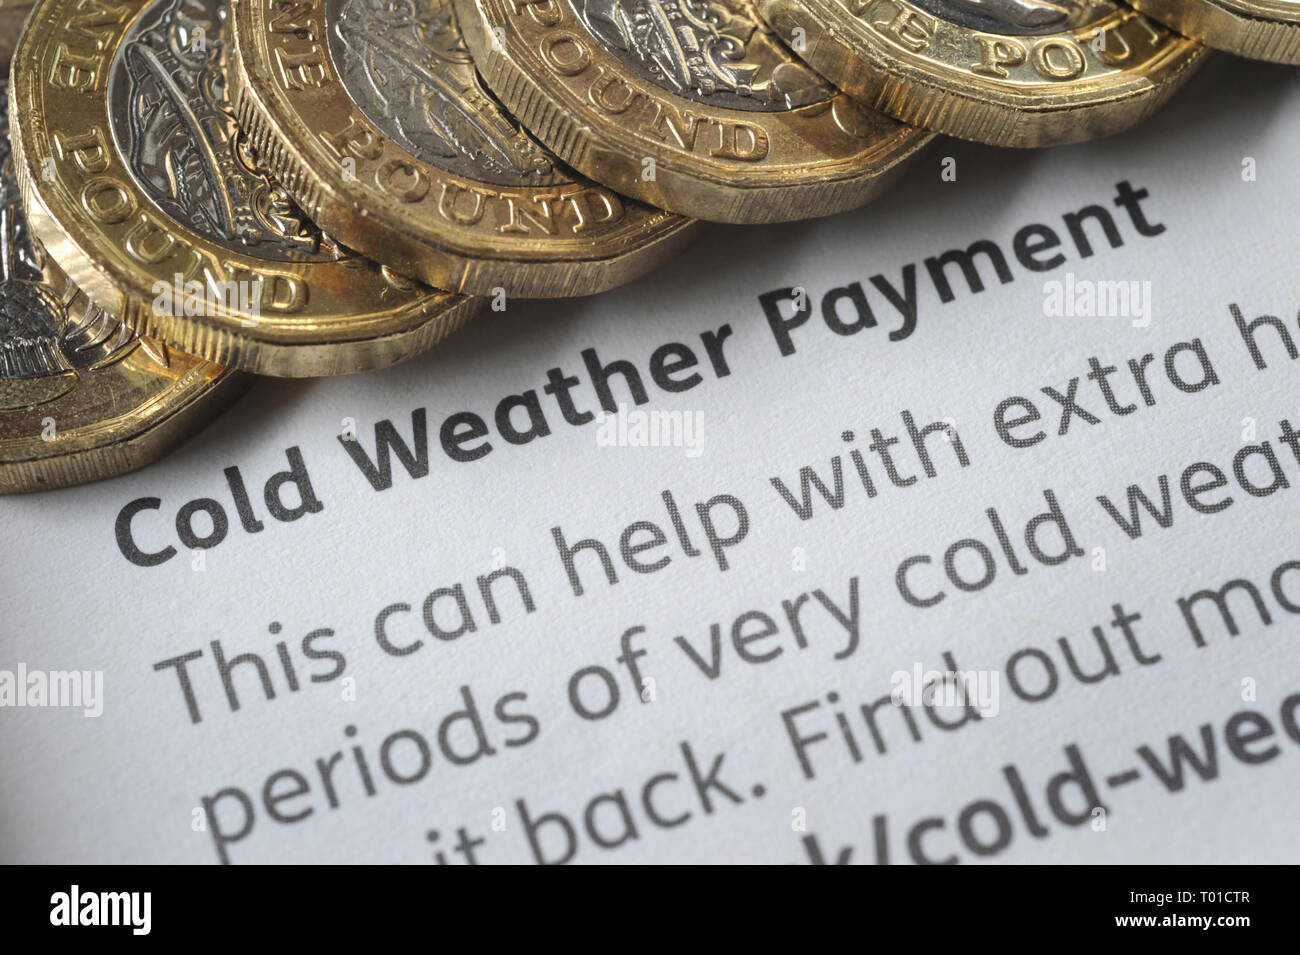 DWP COLD WEATHER PAYMENT LEAFLET WITH ONE POUND COINS RE BENEFITS THE ELDERLY PENSIONERS LOW INCOME PENSION CREDIT ETC UK - Stock Image